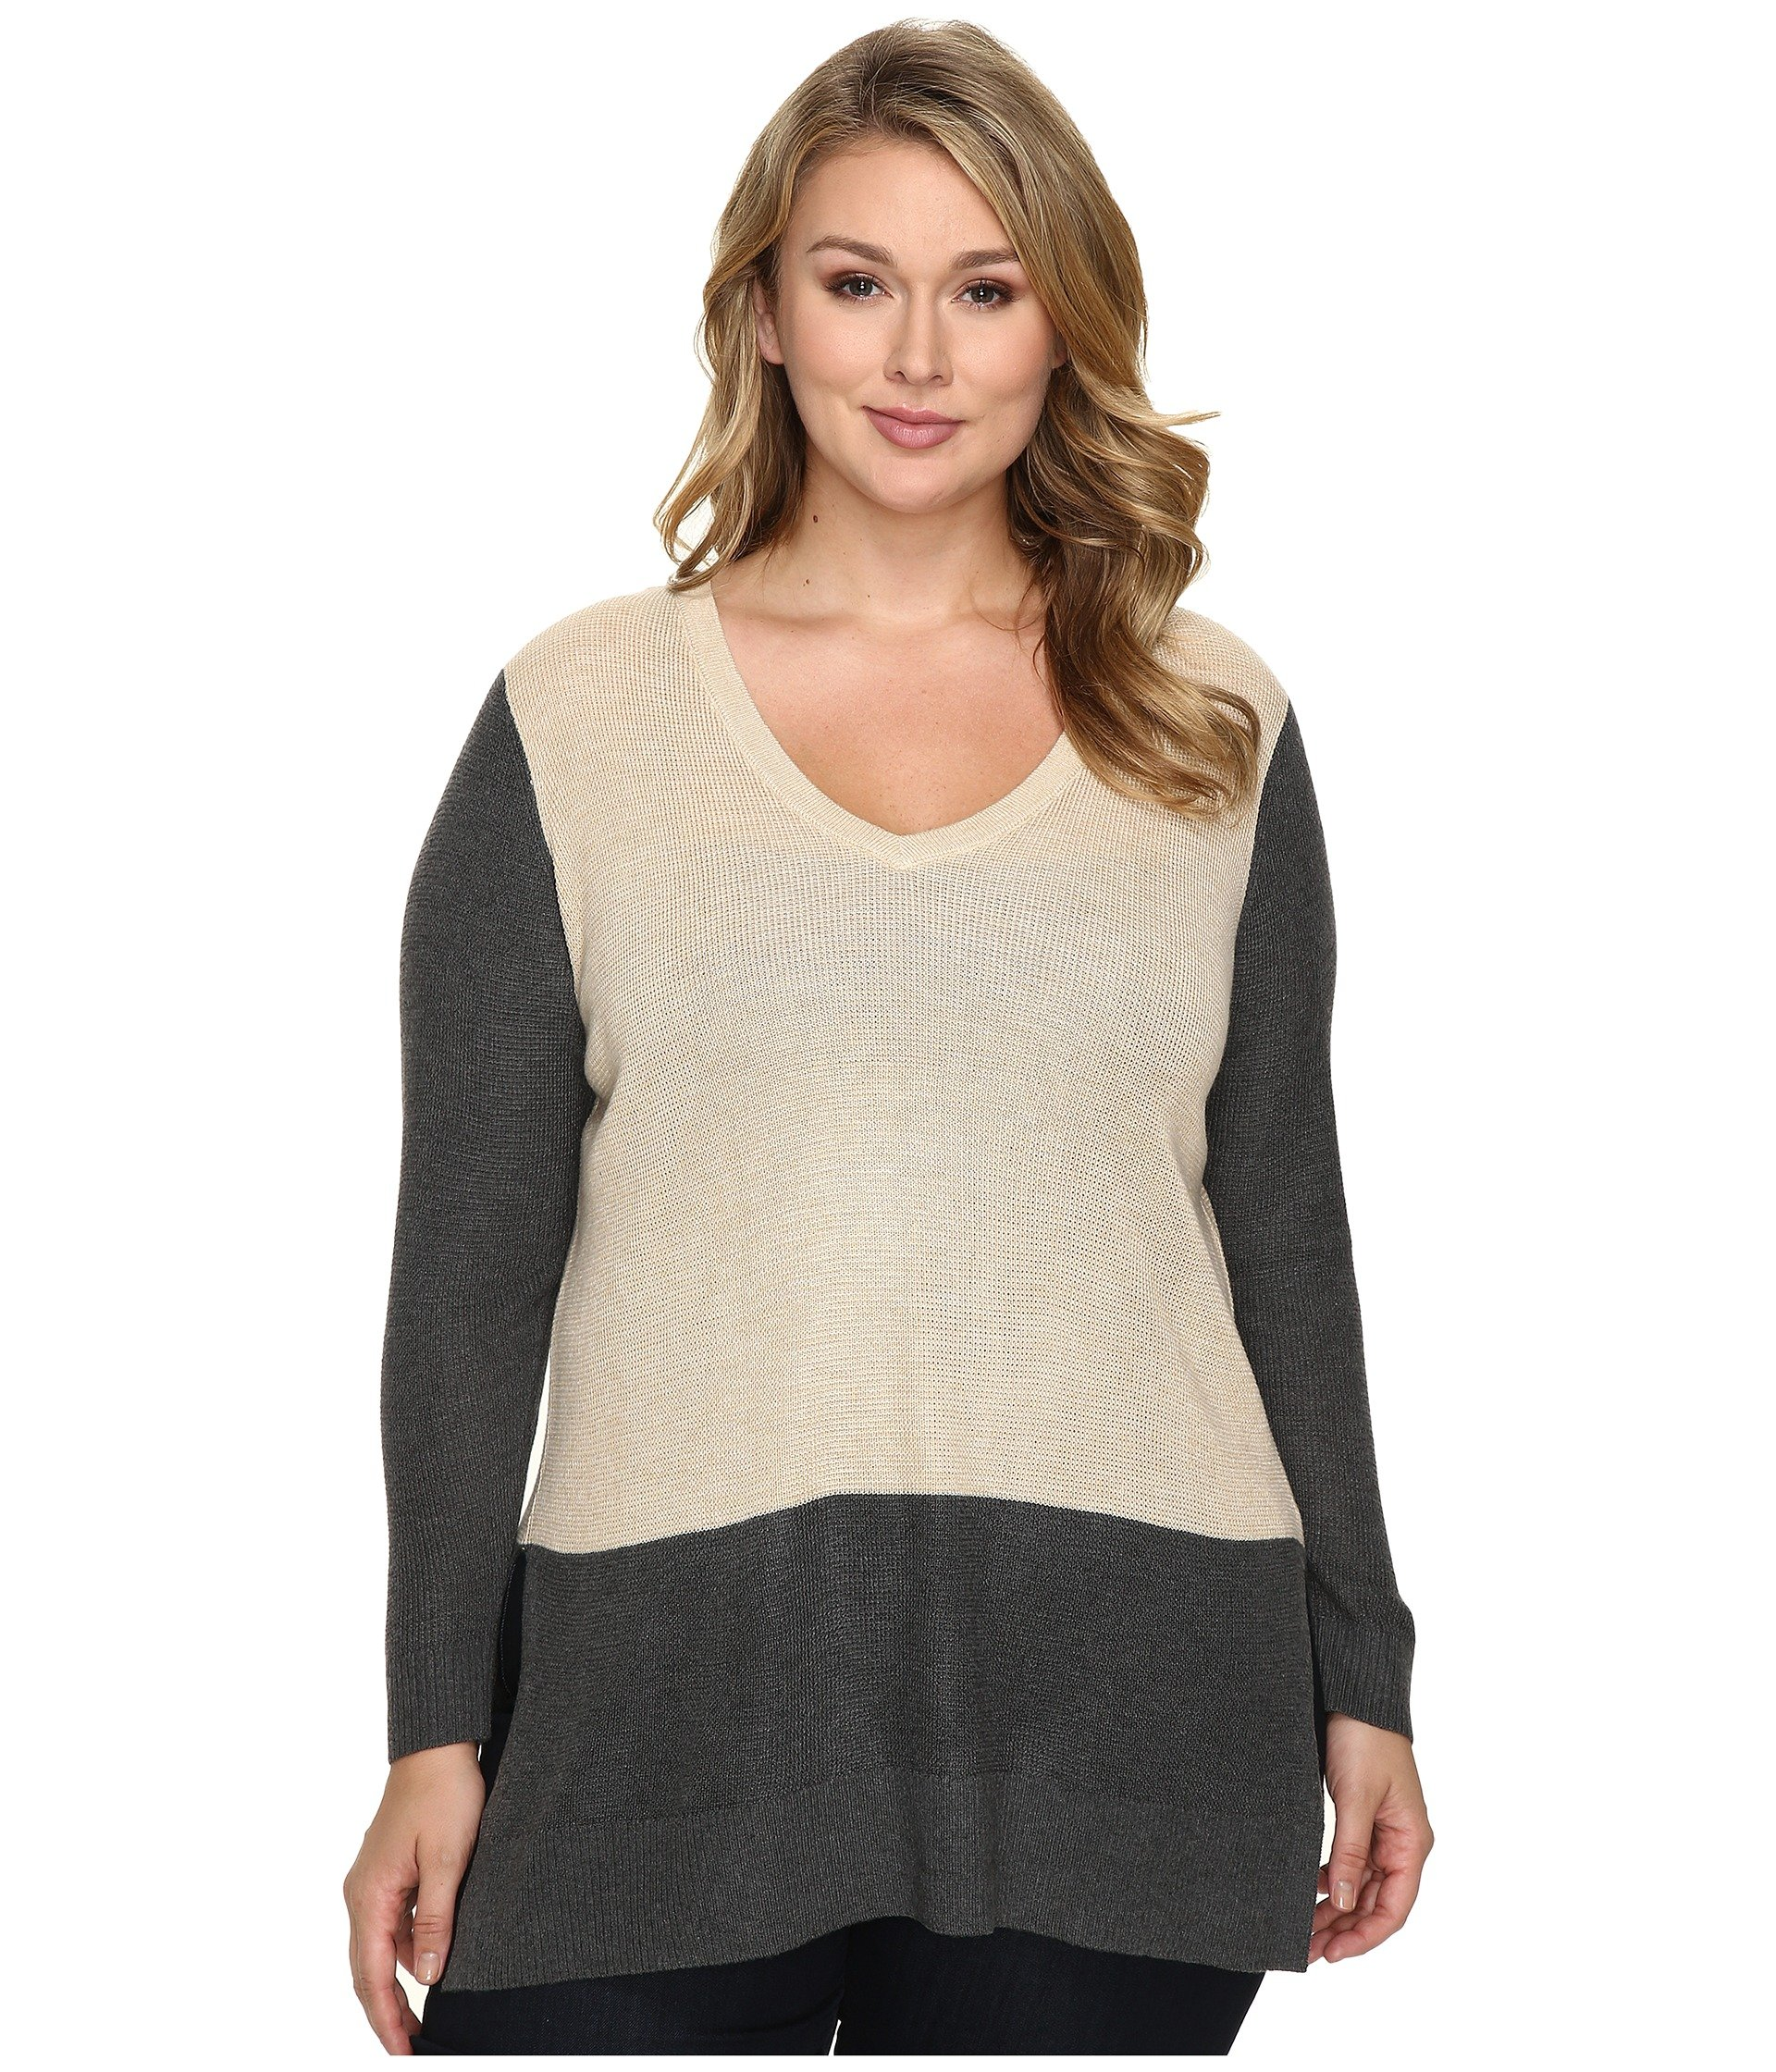 Saco para Mujer Vince Camuto Specialty Size Plus Size Long Sleeve V-Neck Neck Waffle-Stitch Color Block Sweater  + Vince Camuto en VeoyCompro.net